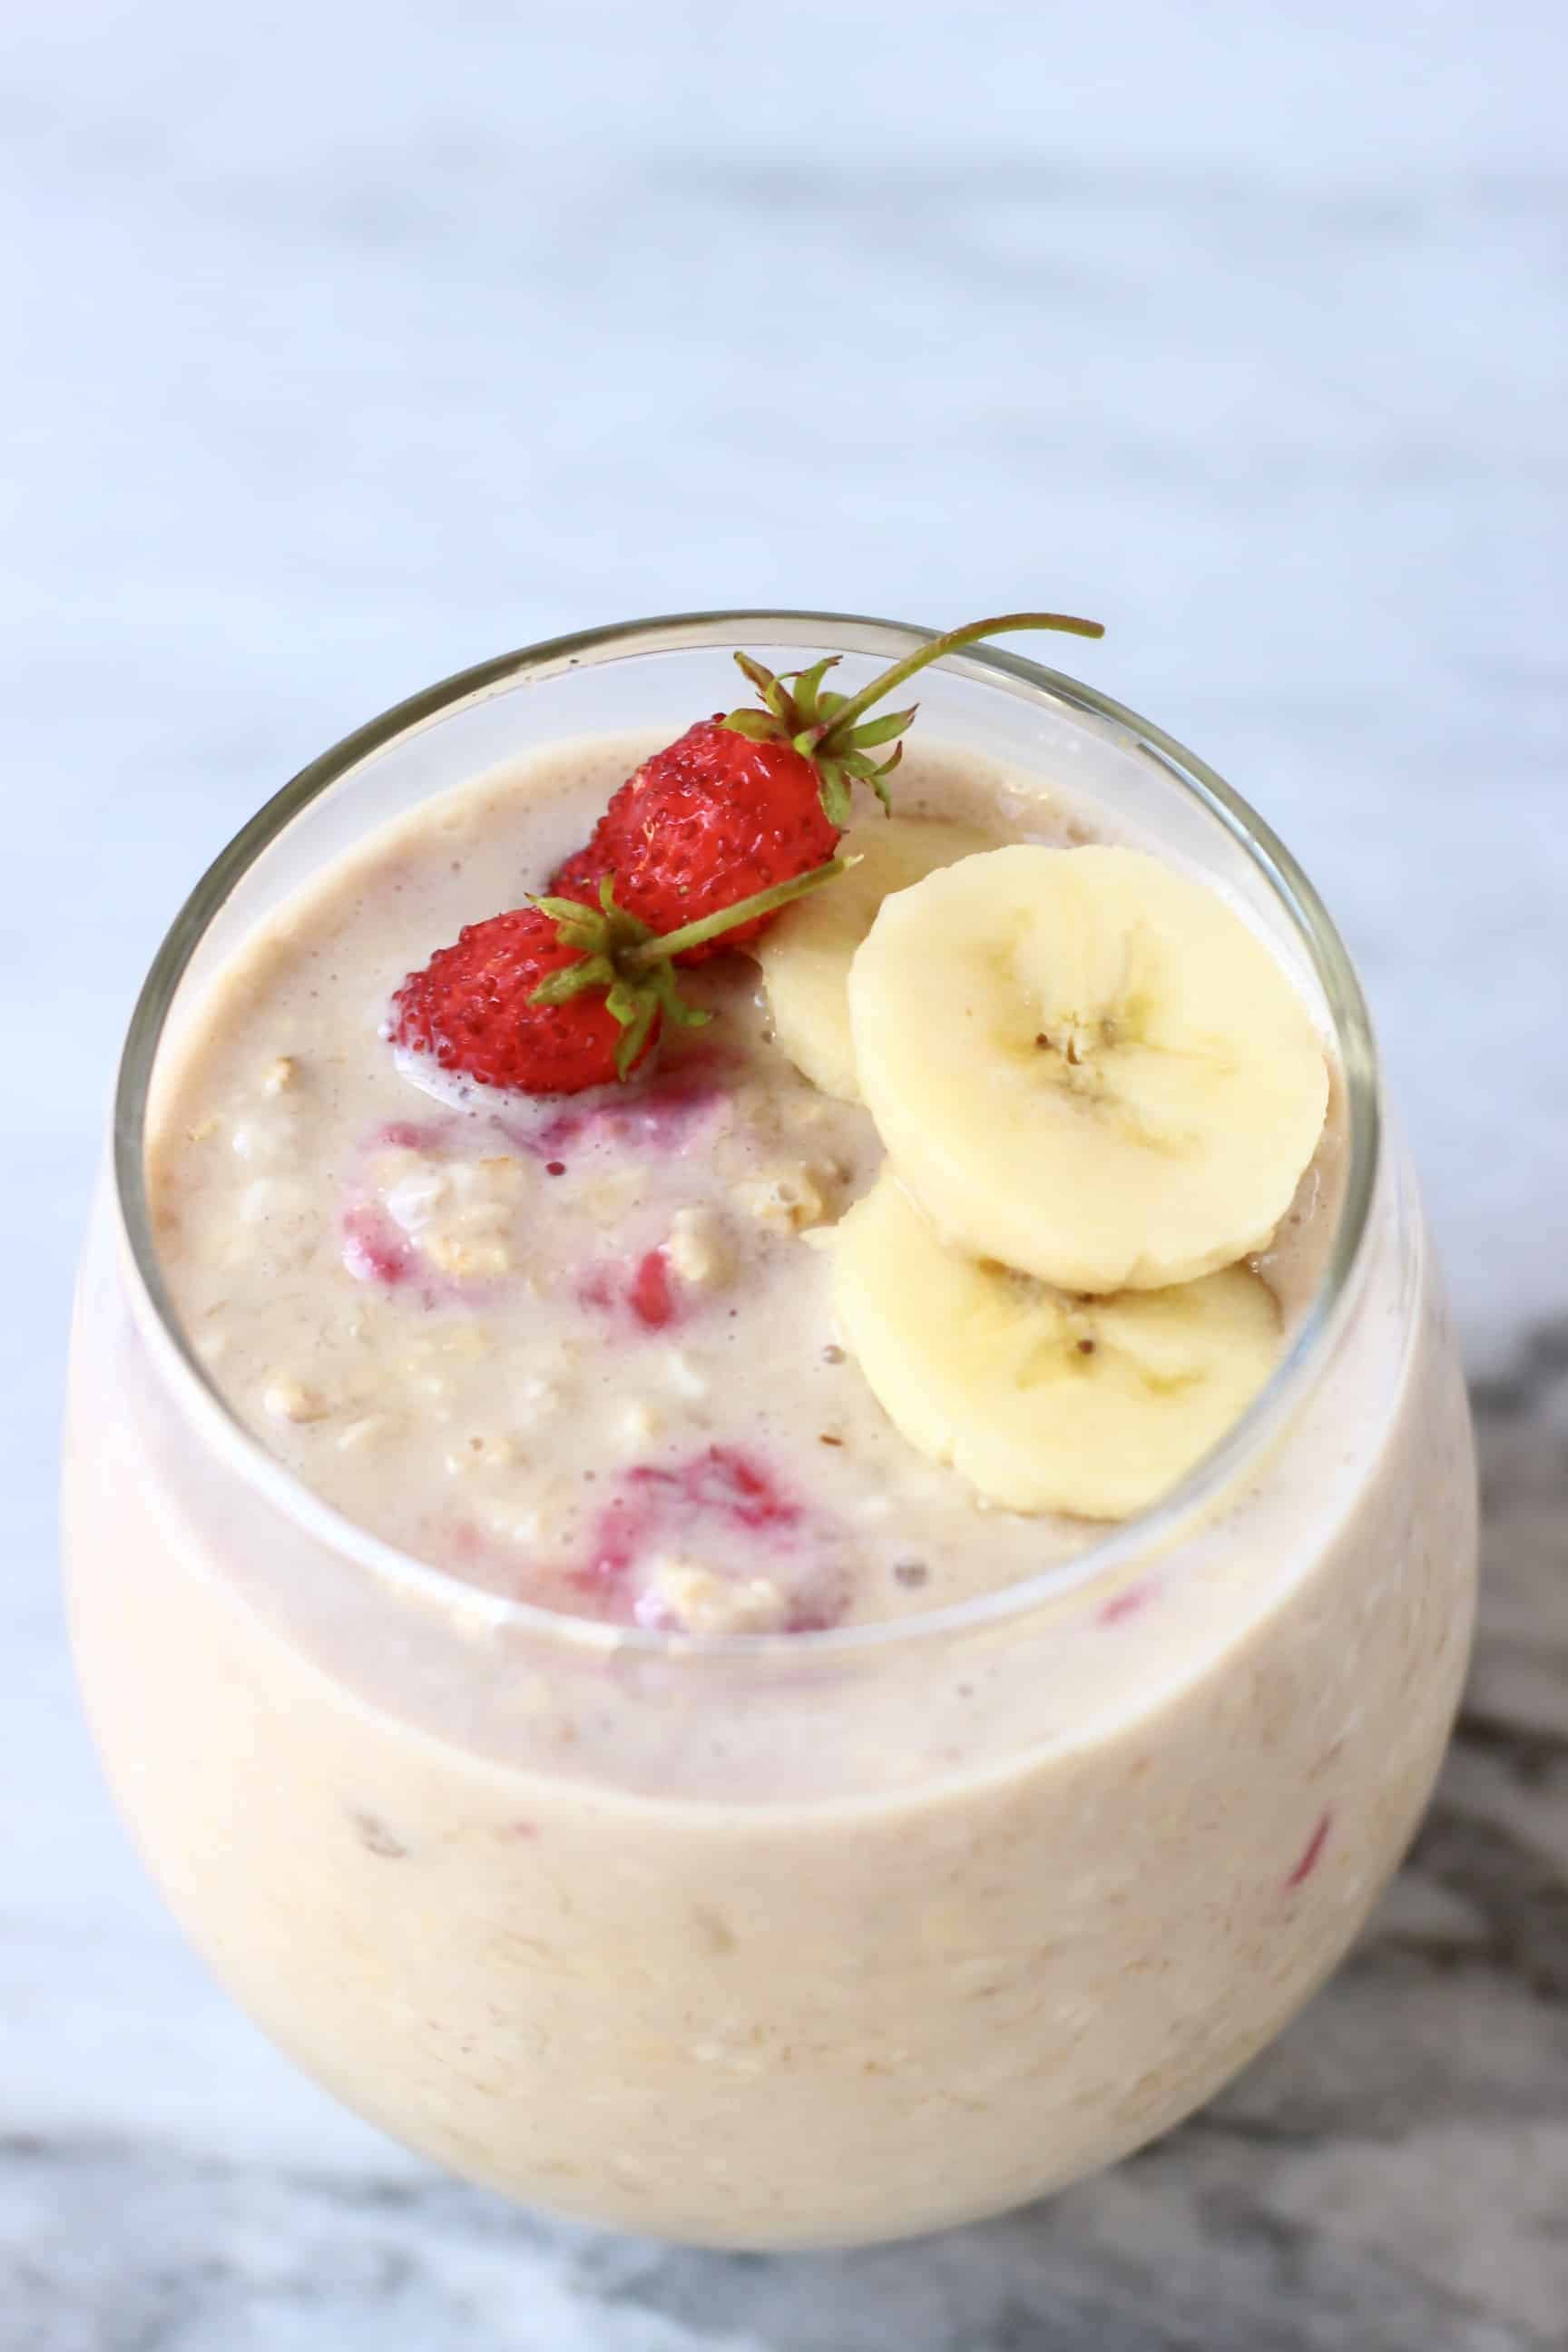 Banana overnight oats in a glass cup topped with sliced bananas and mini strawberries